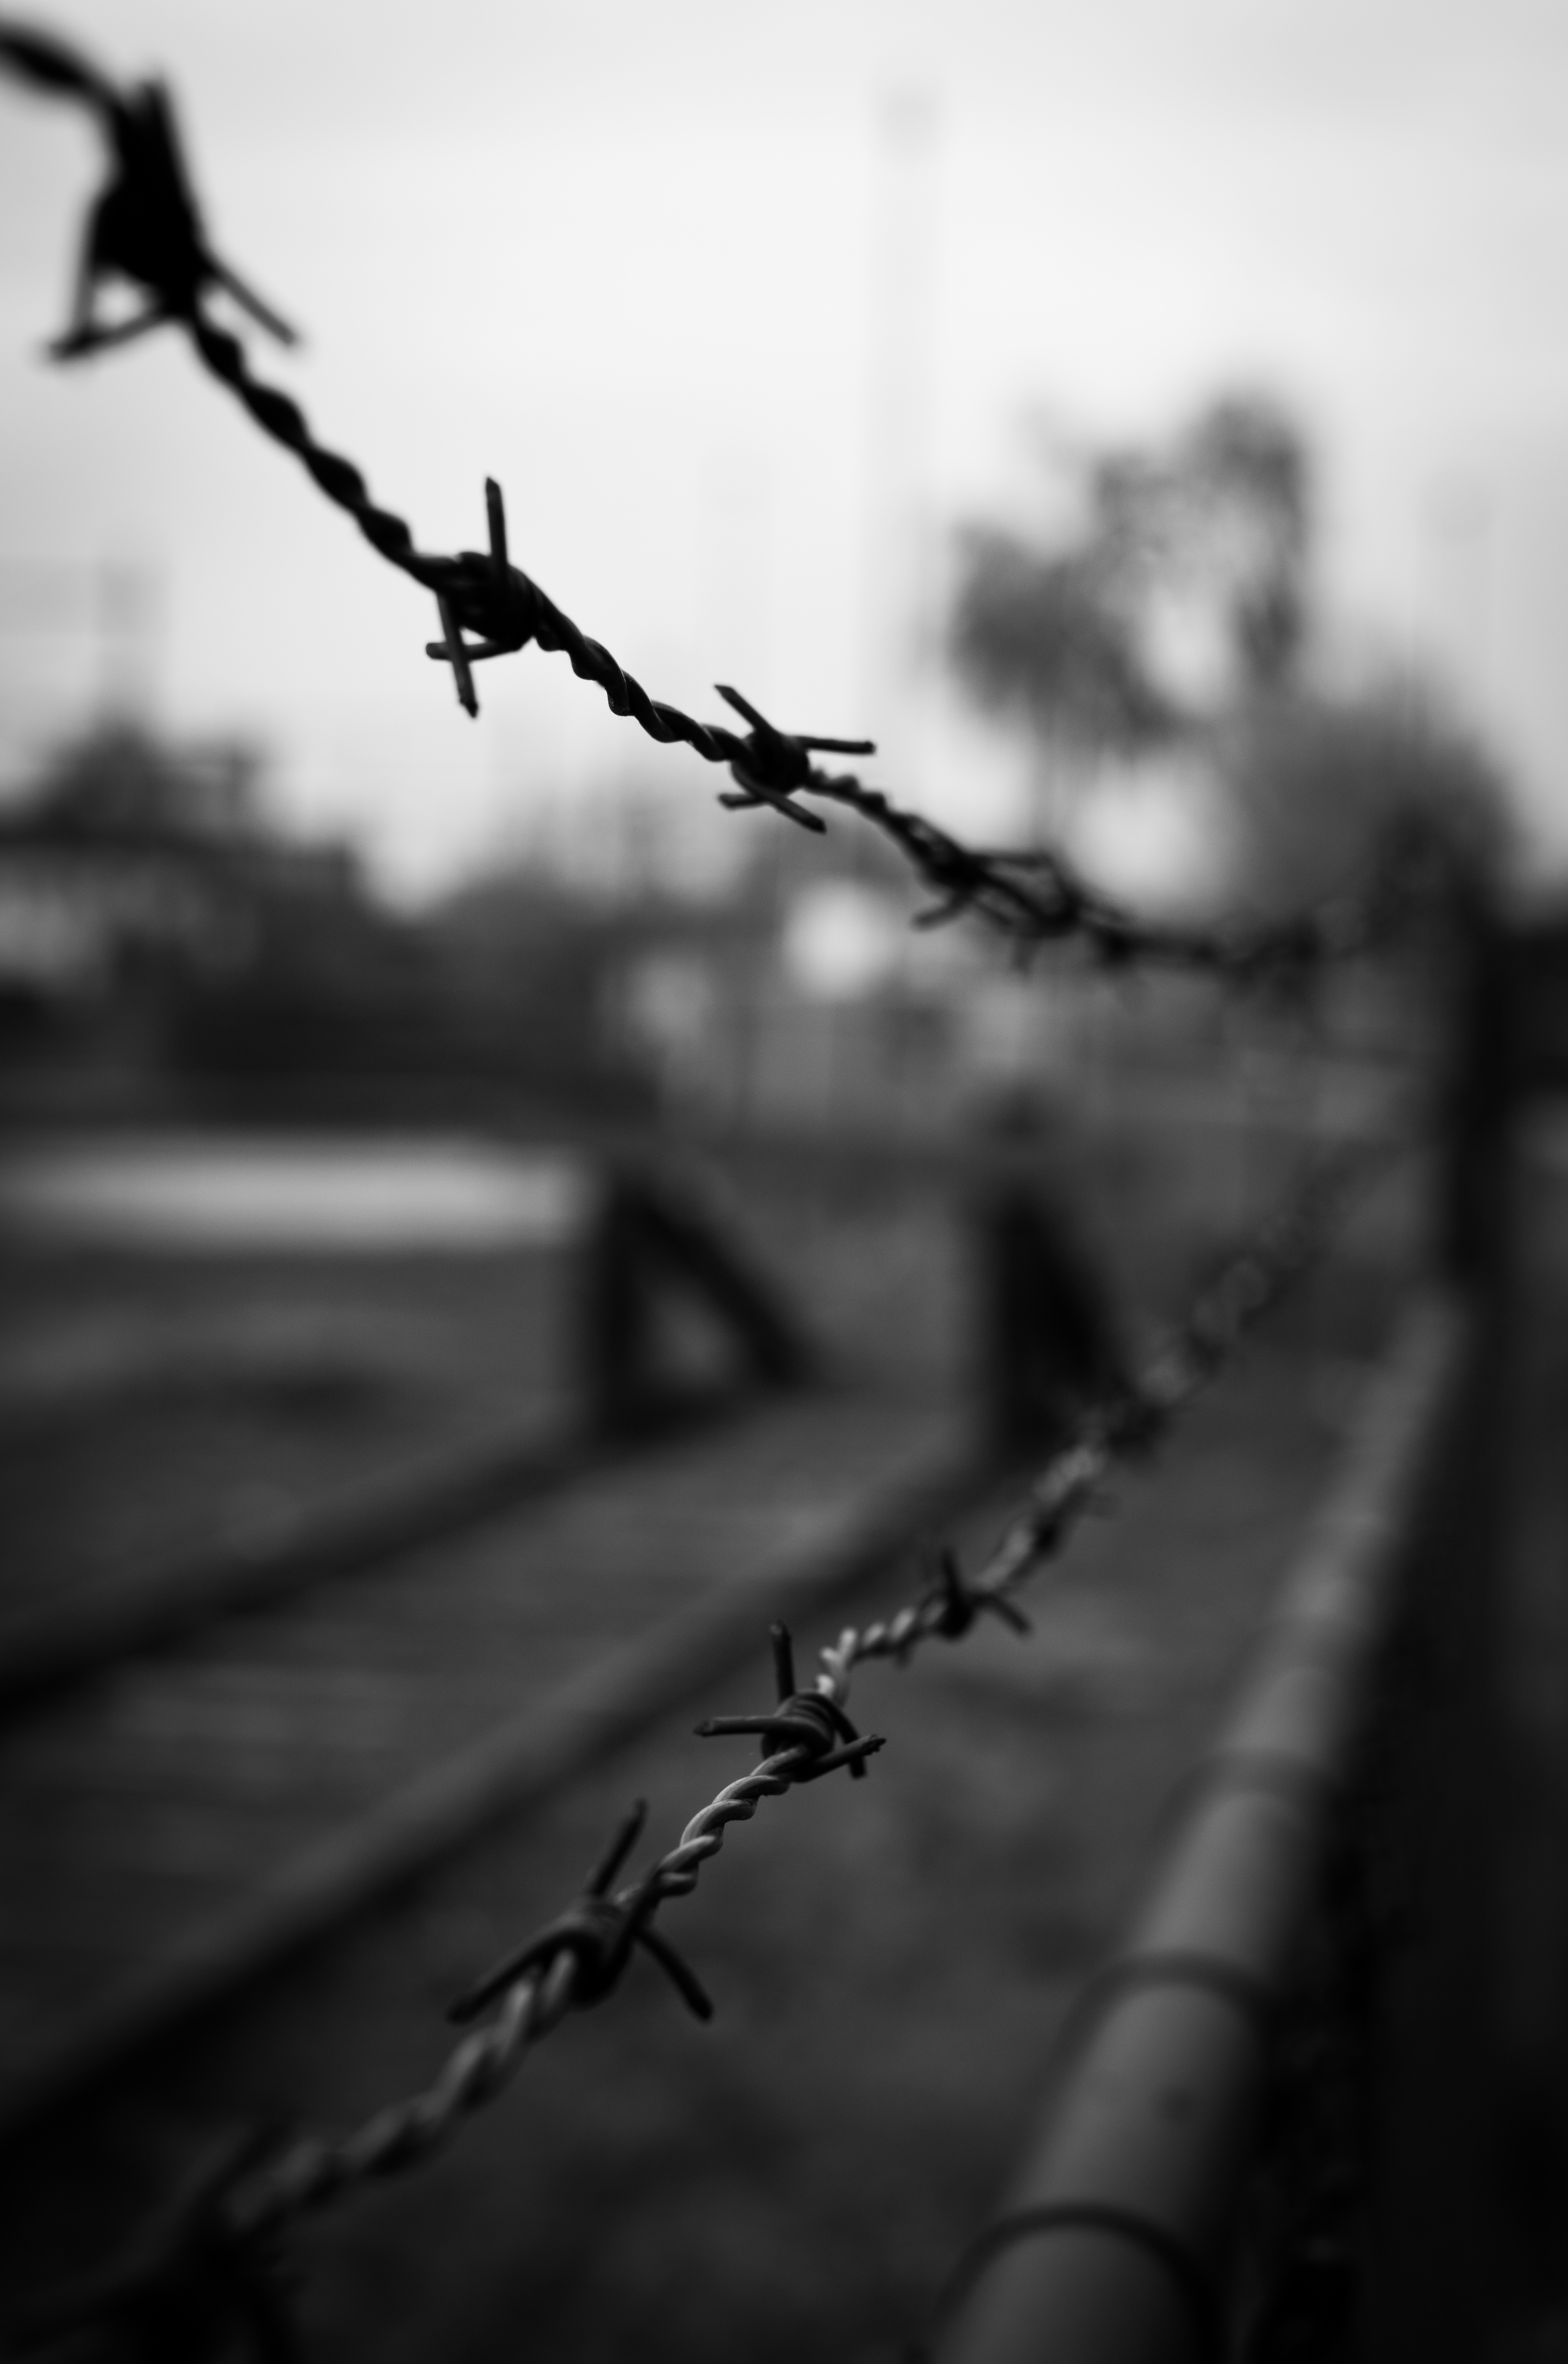 Barbed wire black and white crime fence forbidden · free photo